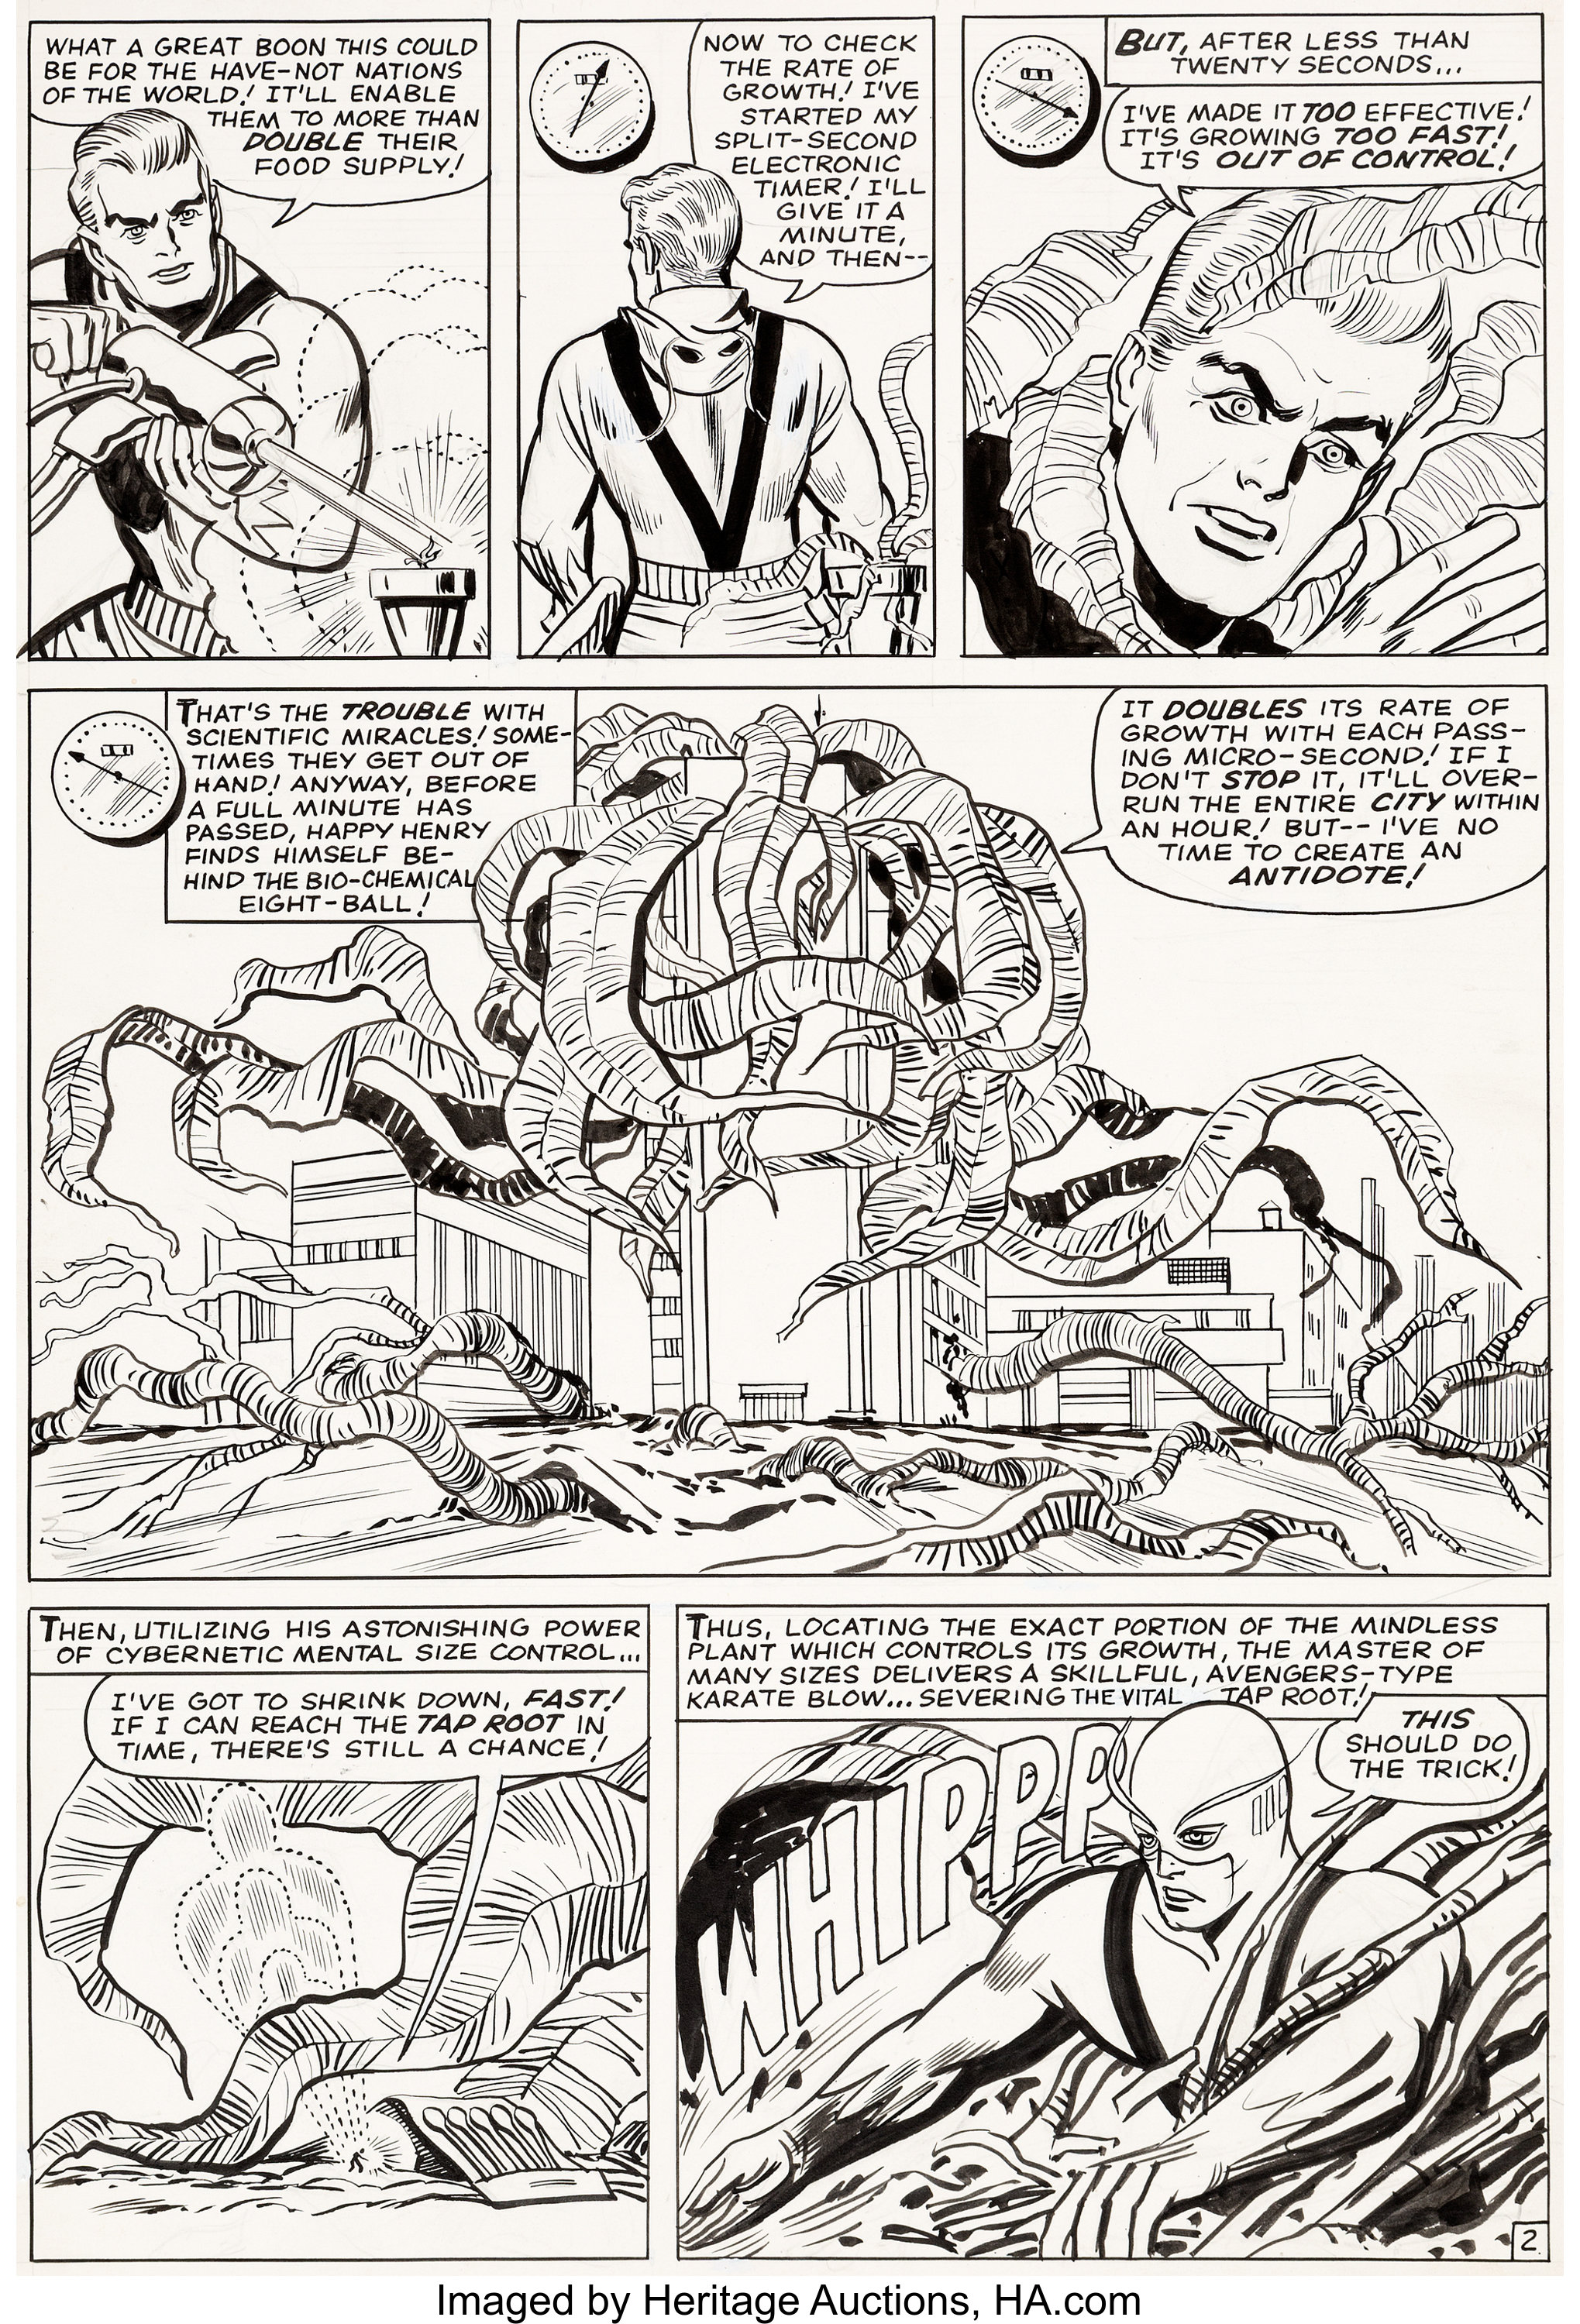 Carl Burgos and George Roussos Tales To Astonish #62 Story Page 2 | Lot  #94046 | Heritage Auctions